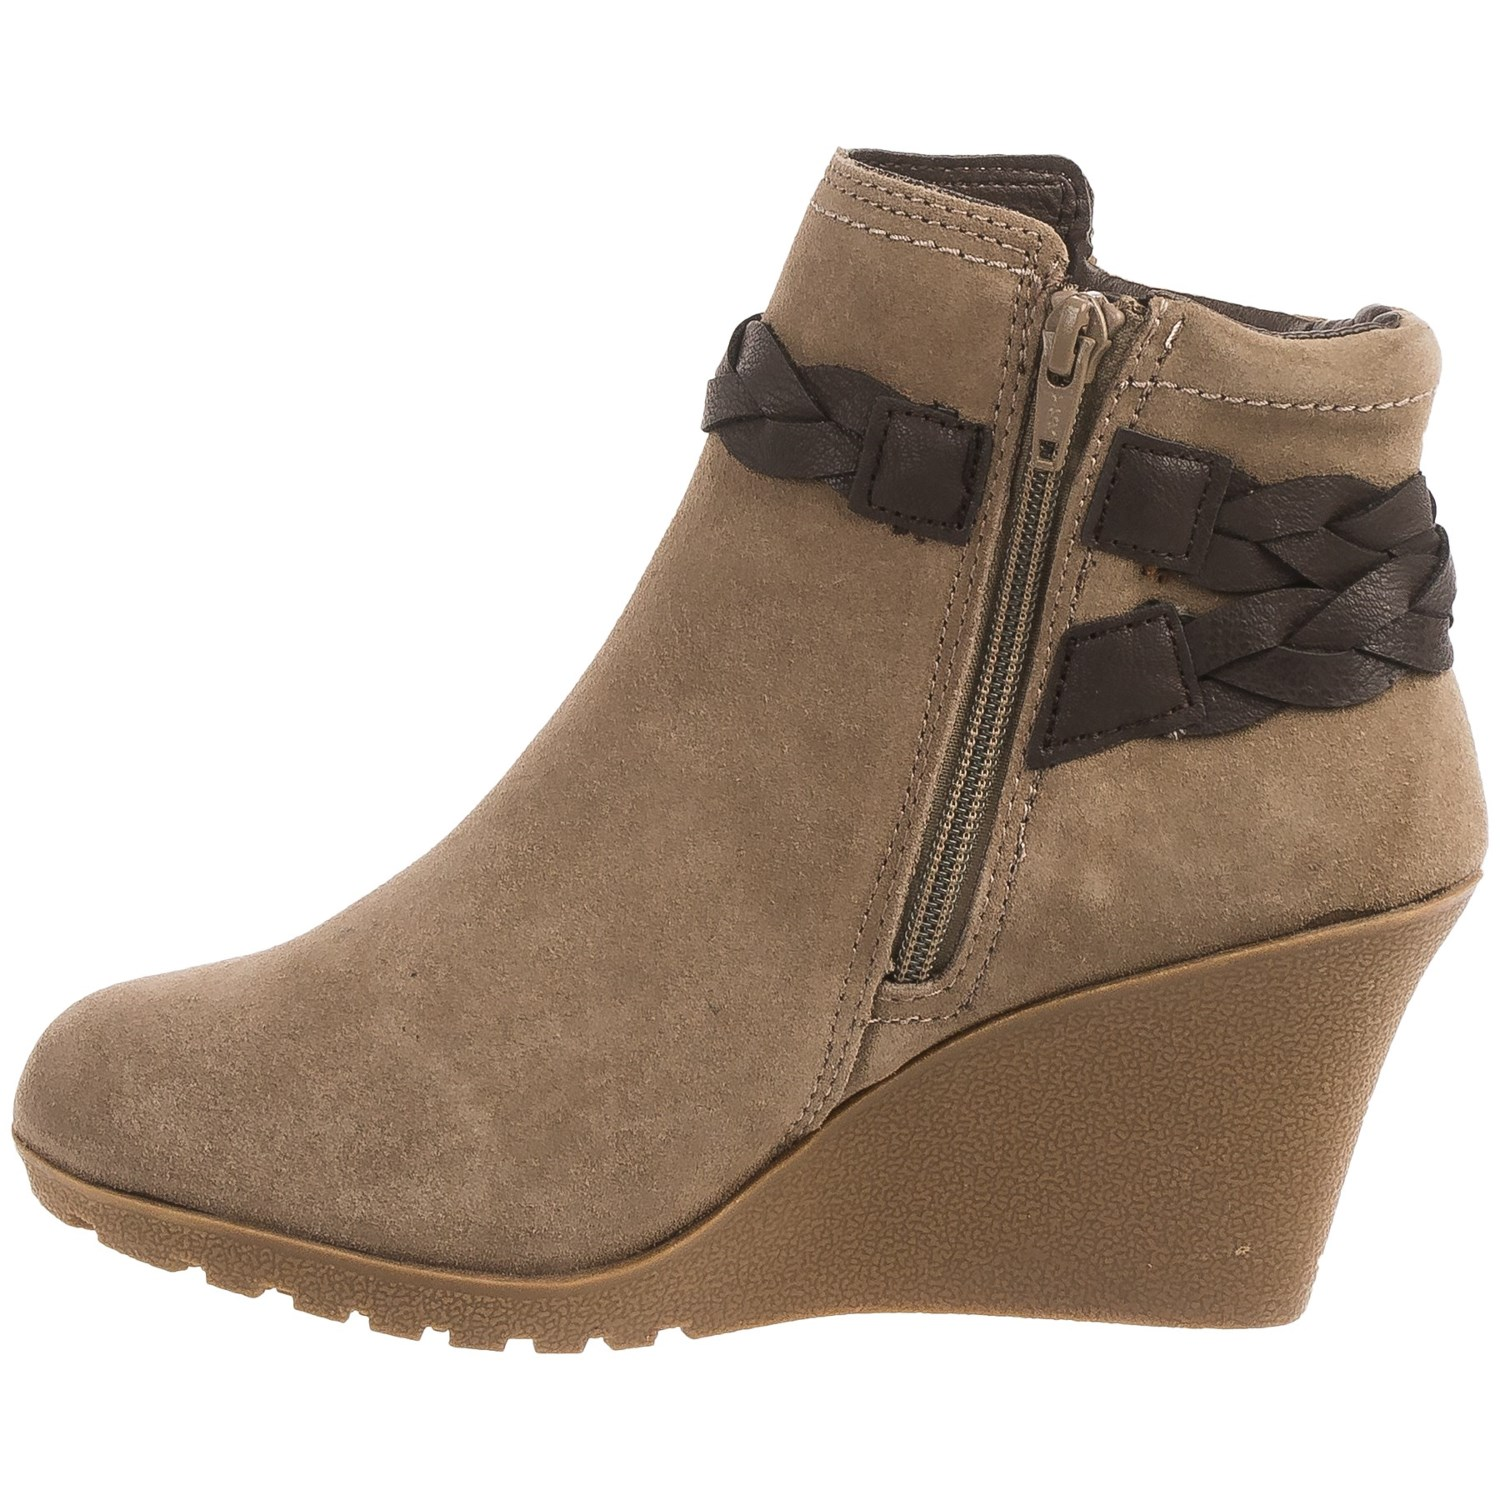 White Mountain Isabella Wedge Ankle Boots (For Women) - Save 82%